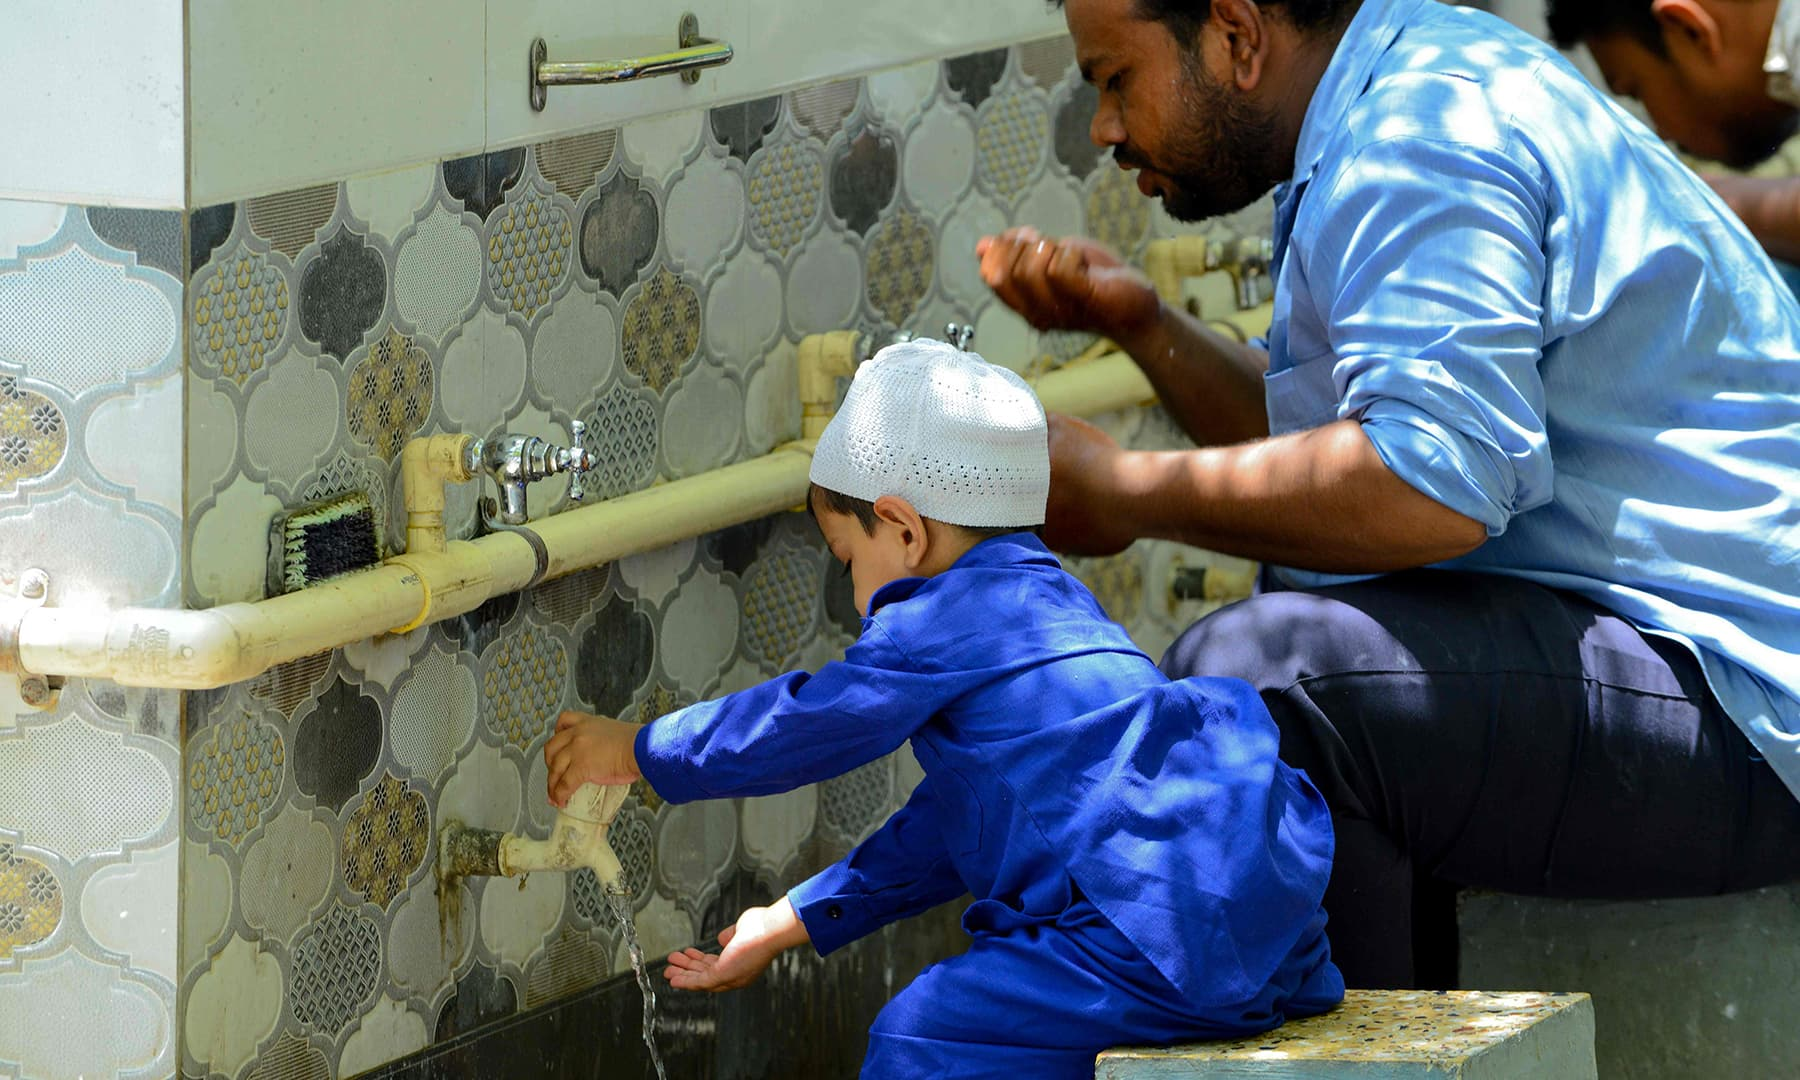 An Indian Muslim boy washes his hands and face before offering prayers on the last Friday of Ramazan at the medieval Shahpur Mosque, also known as Paththarwali Masjid or Kazi Mohammed Chishti's Mosque, in Ahmedabad. — AFP